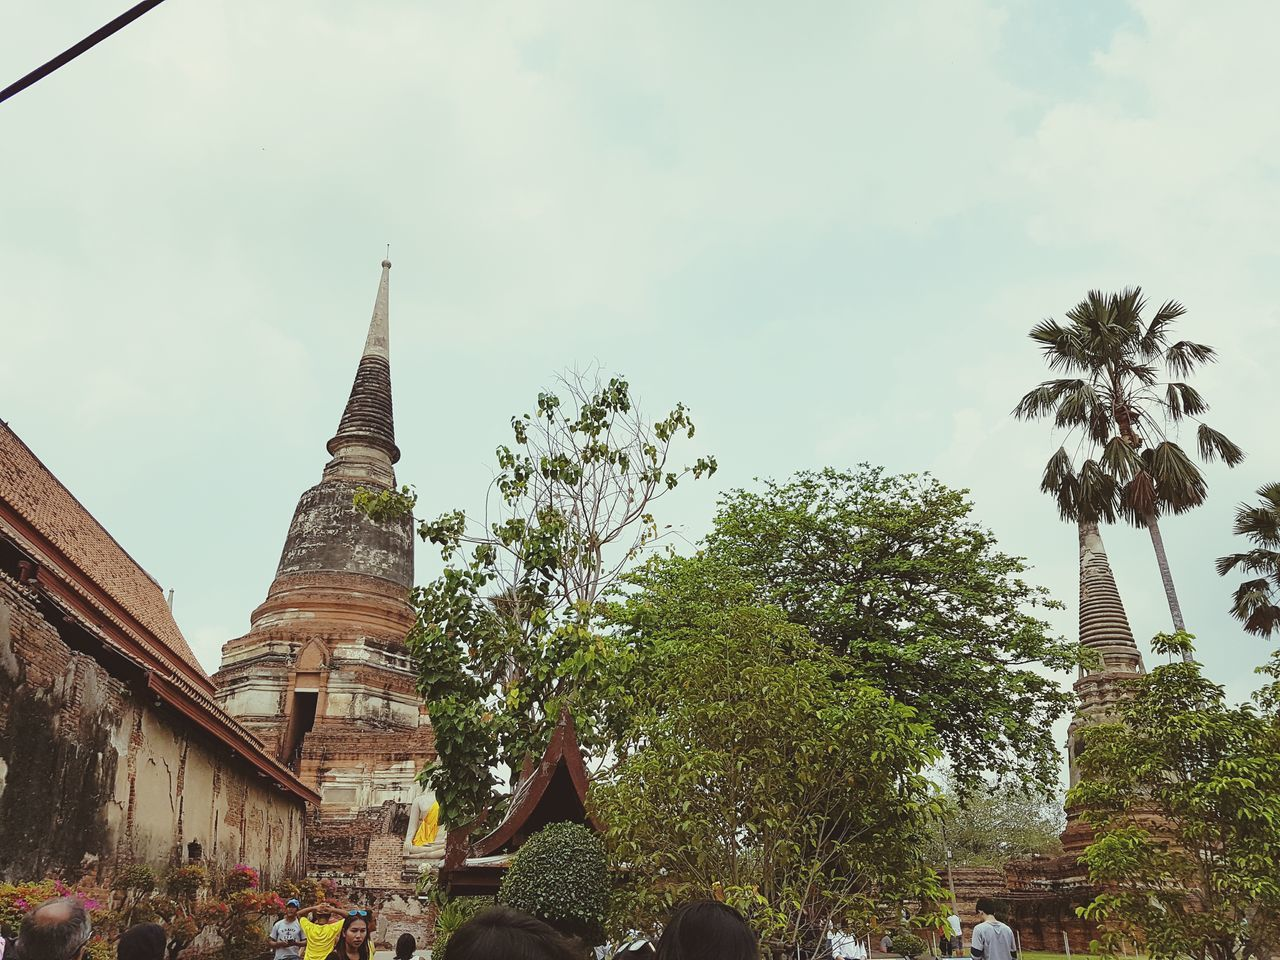 religion, place of worship, architecture, spirituality, built structure, tree, building exterior, history, sky, day, travel destinations, ancient, real people, men, outdoors, ancient civilization, nature, people